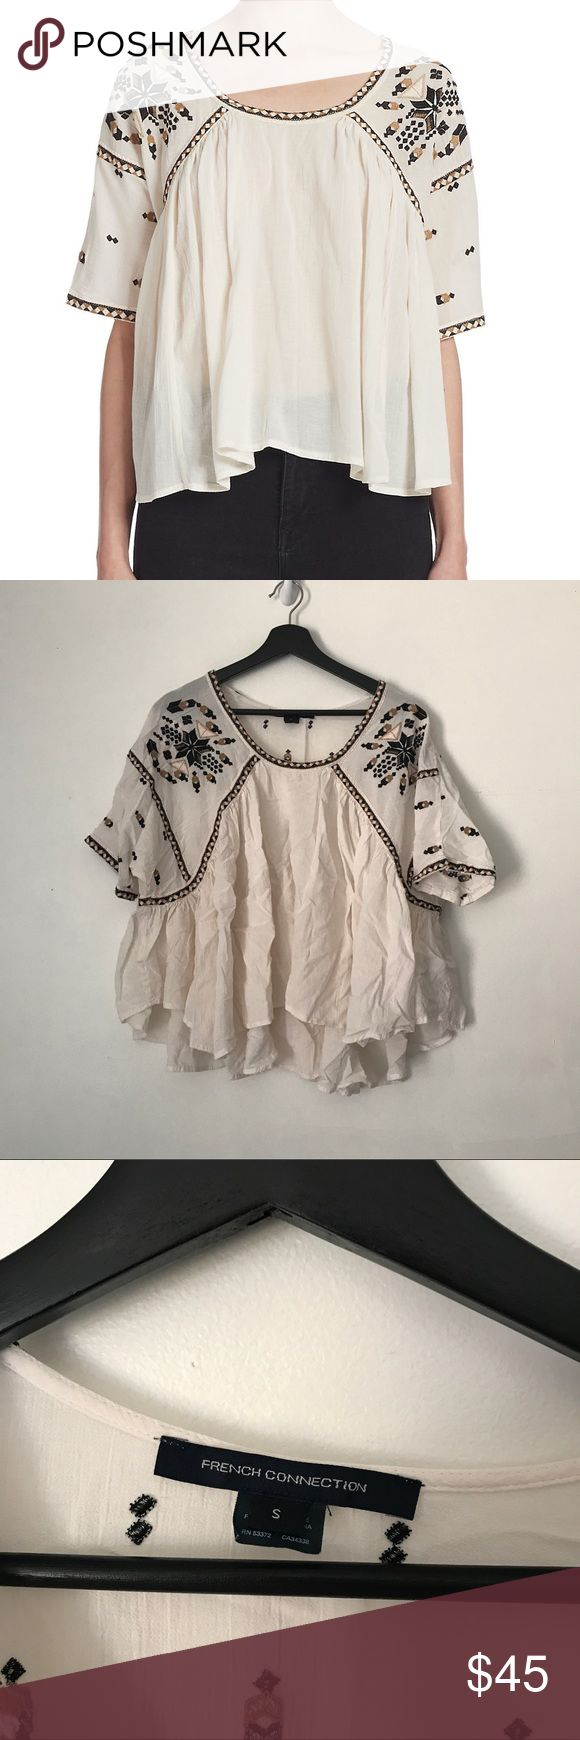 French Connection Embroidered Flowy Peasant Blouse Adorable natural colored embroidered flowy peasant blouse from French Connection. Size small. Good pre worn condition! No trades or try ons. French Connection Tops